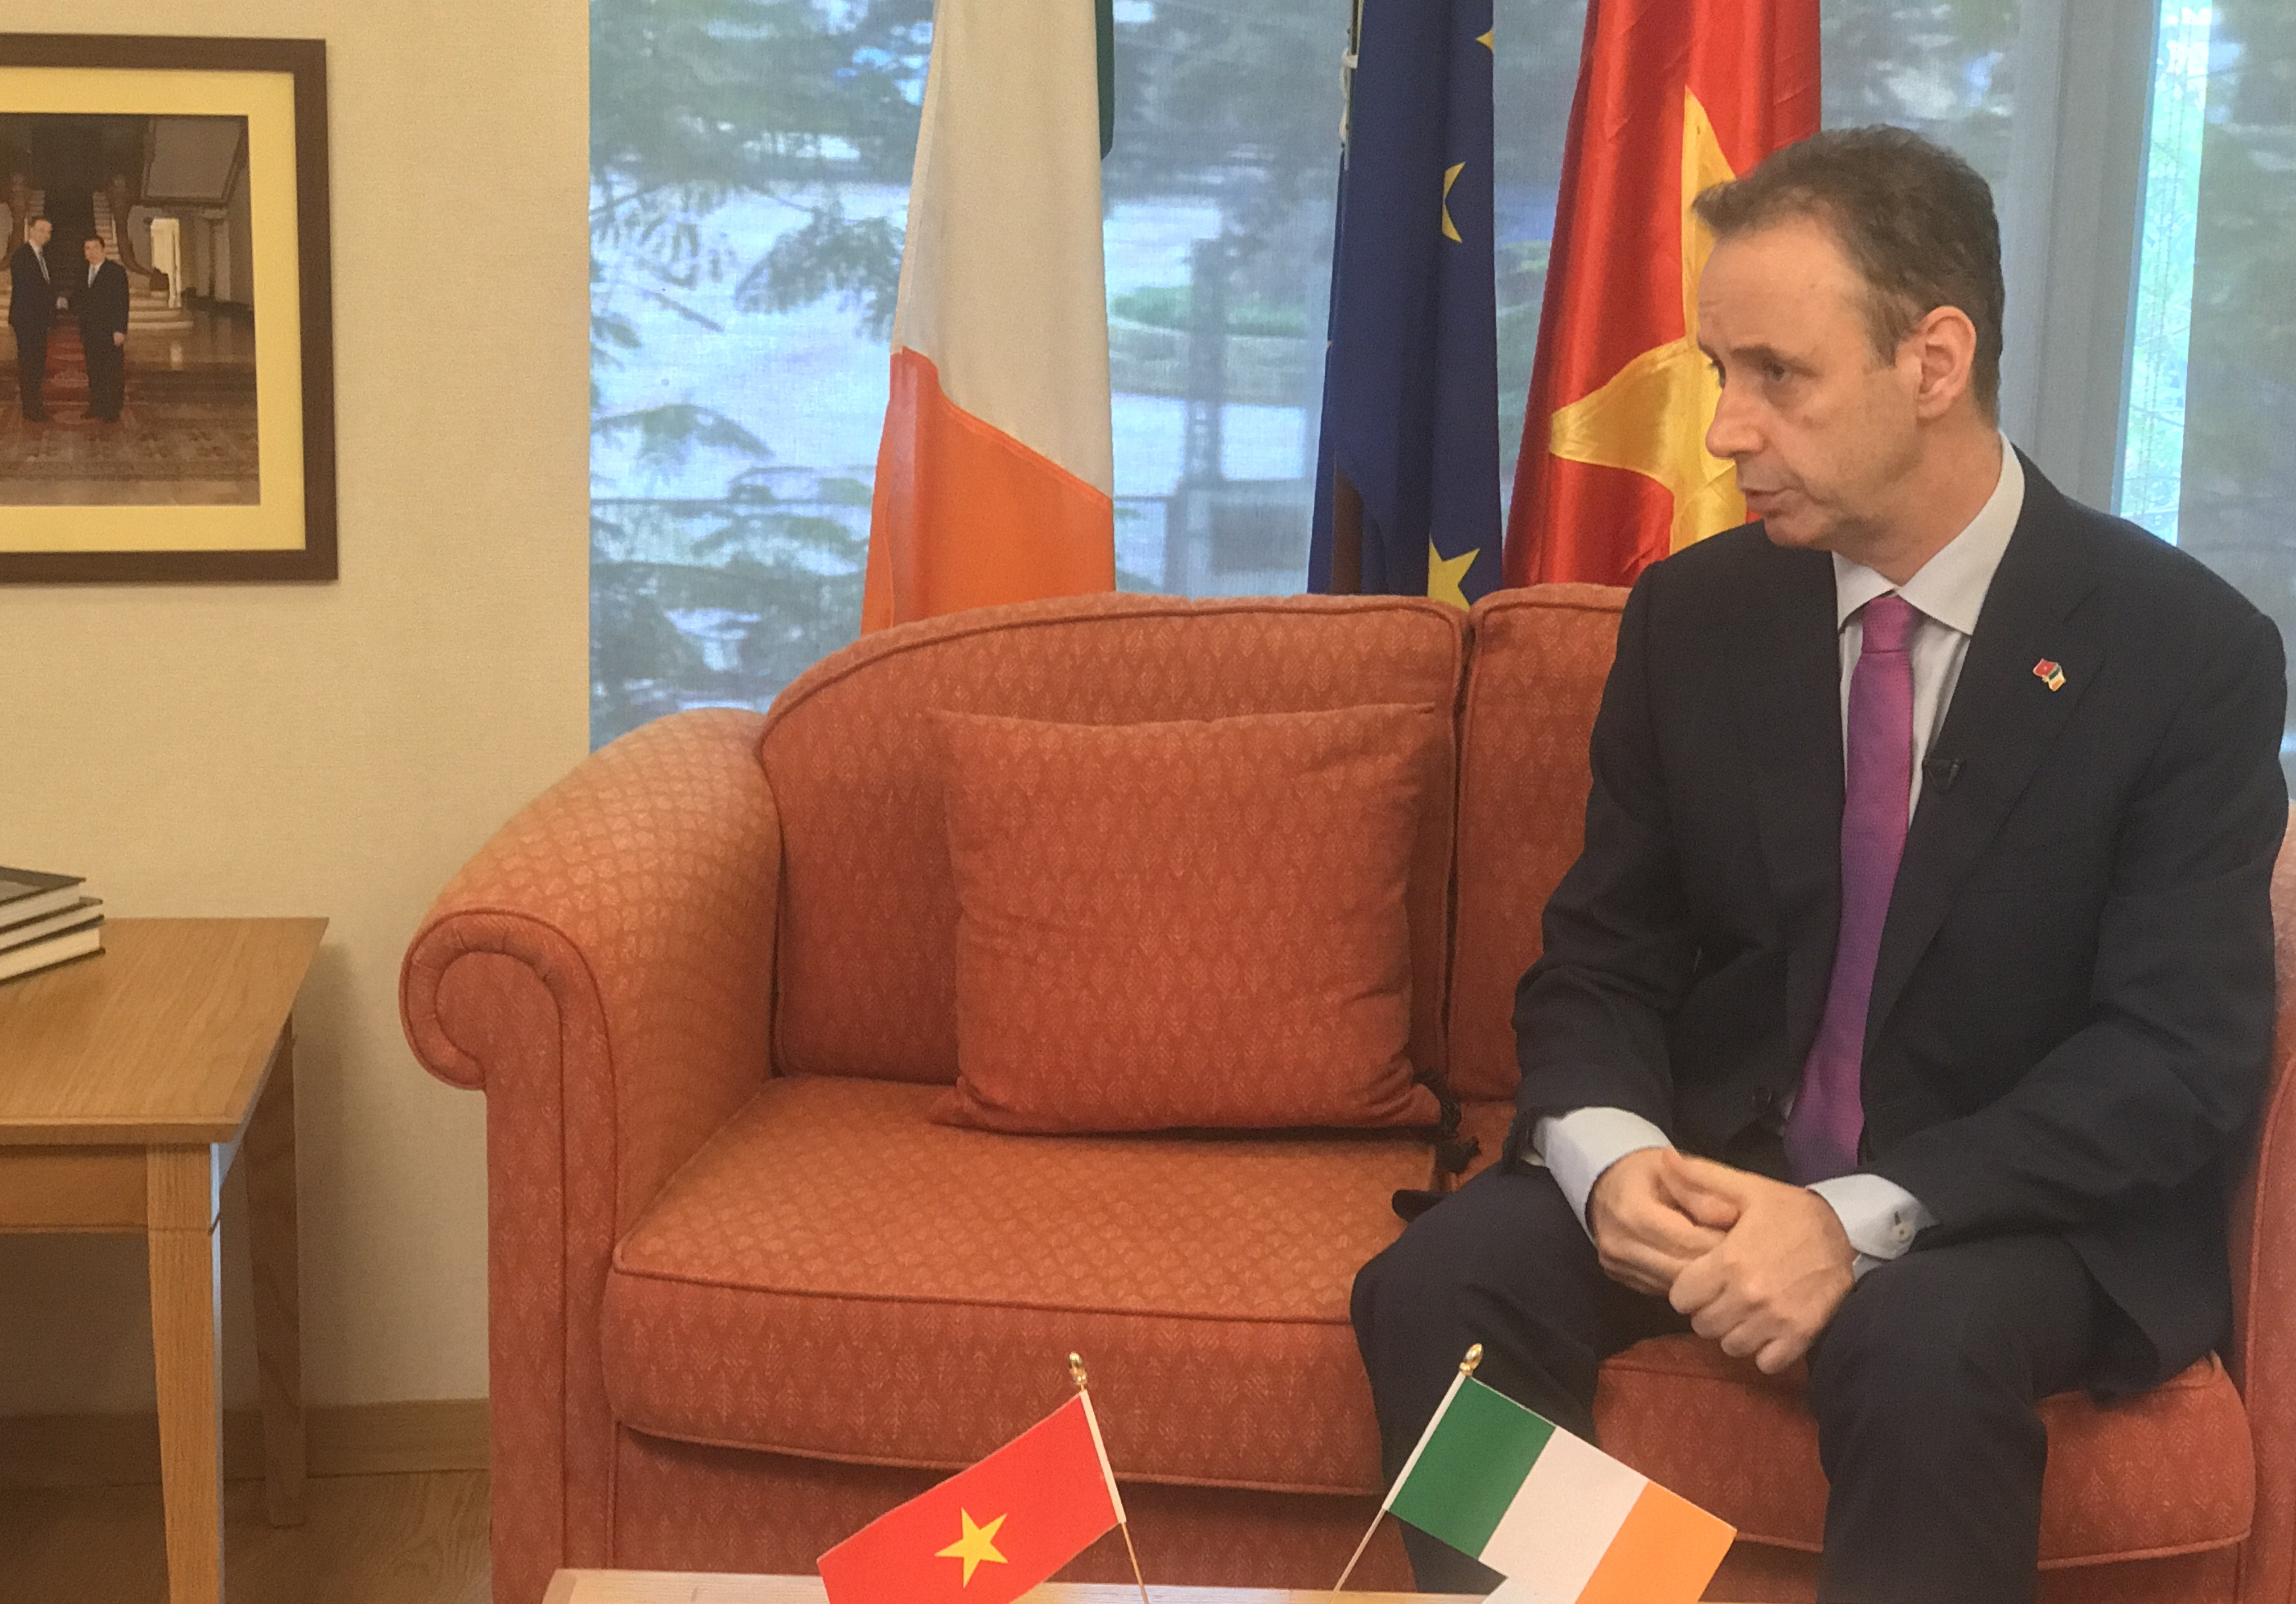 EVFTA will bring great opportunities for Vietnam and Ireland